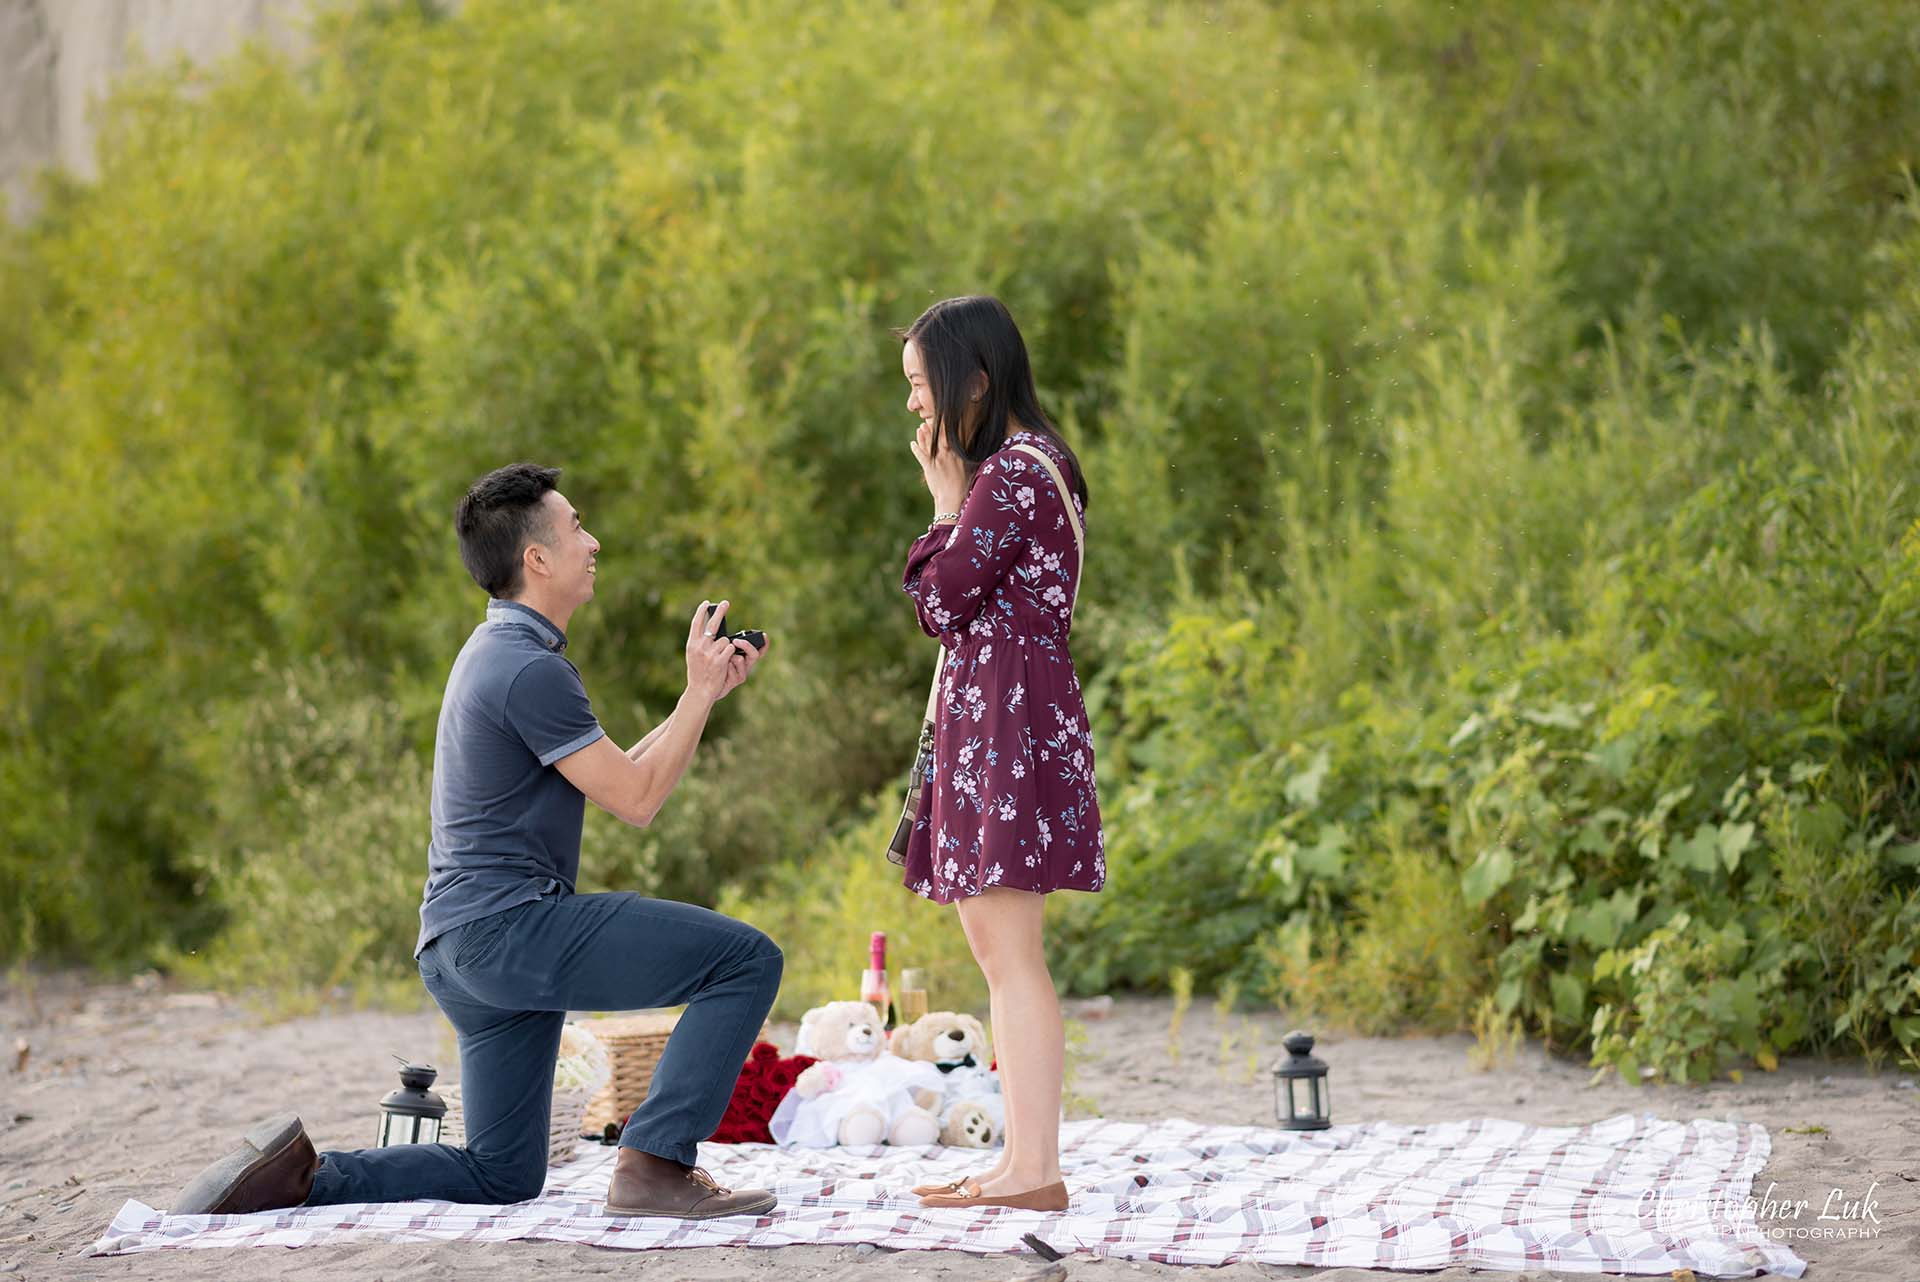 Christopher Luk Toronto Photographer Scarborough Bluffs Beach Park Sunset Surprise Wedding Marriage Engagement Proposal Candid Natural Photojournalistic Bride Groom Picnic Blanket Basket She Said Yes Engaged Ring on Finger Hug Down On One Knee